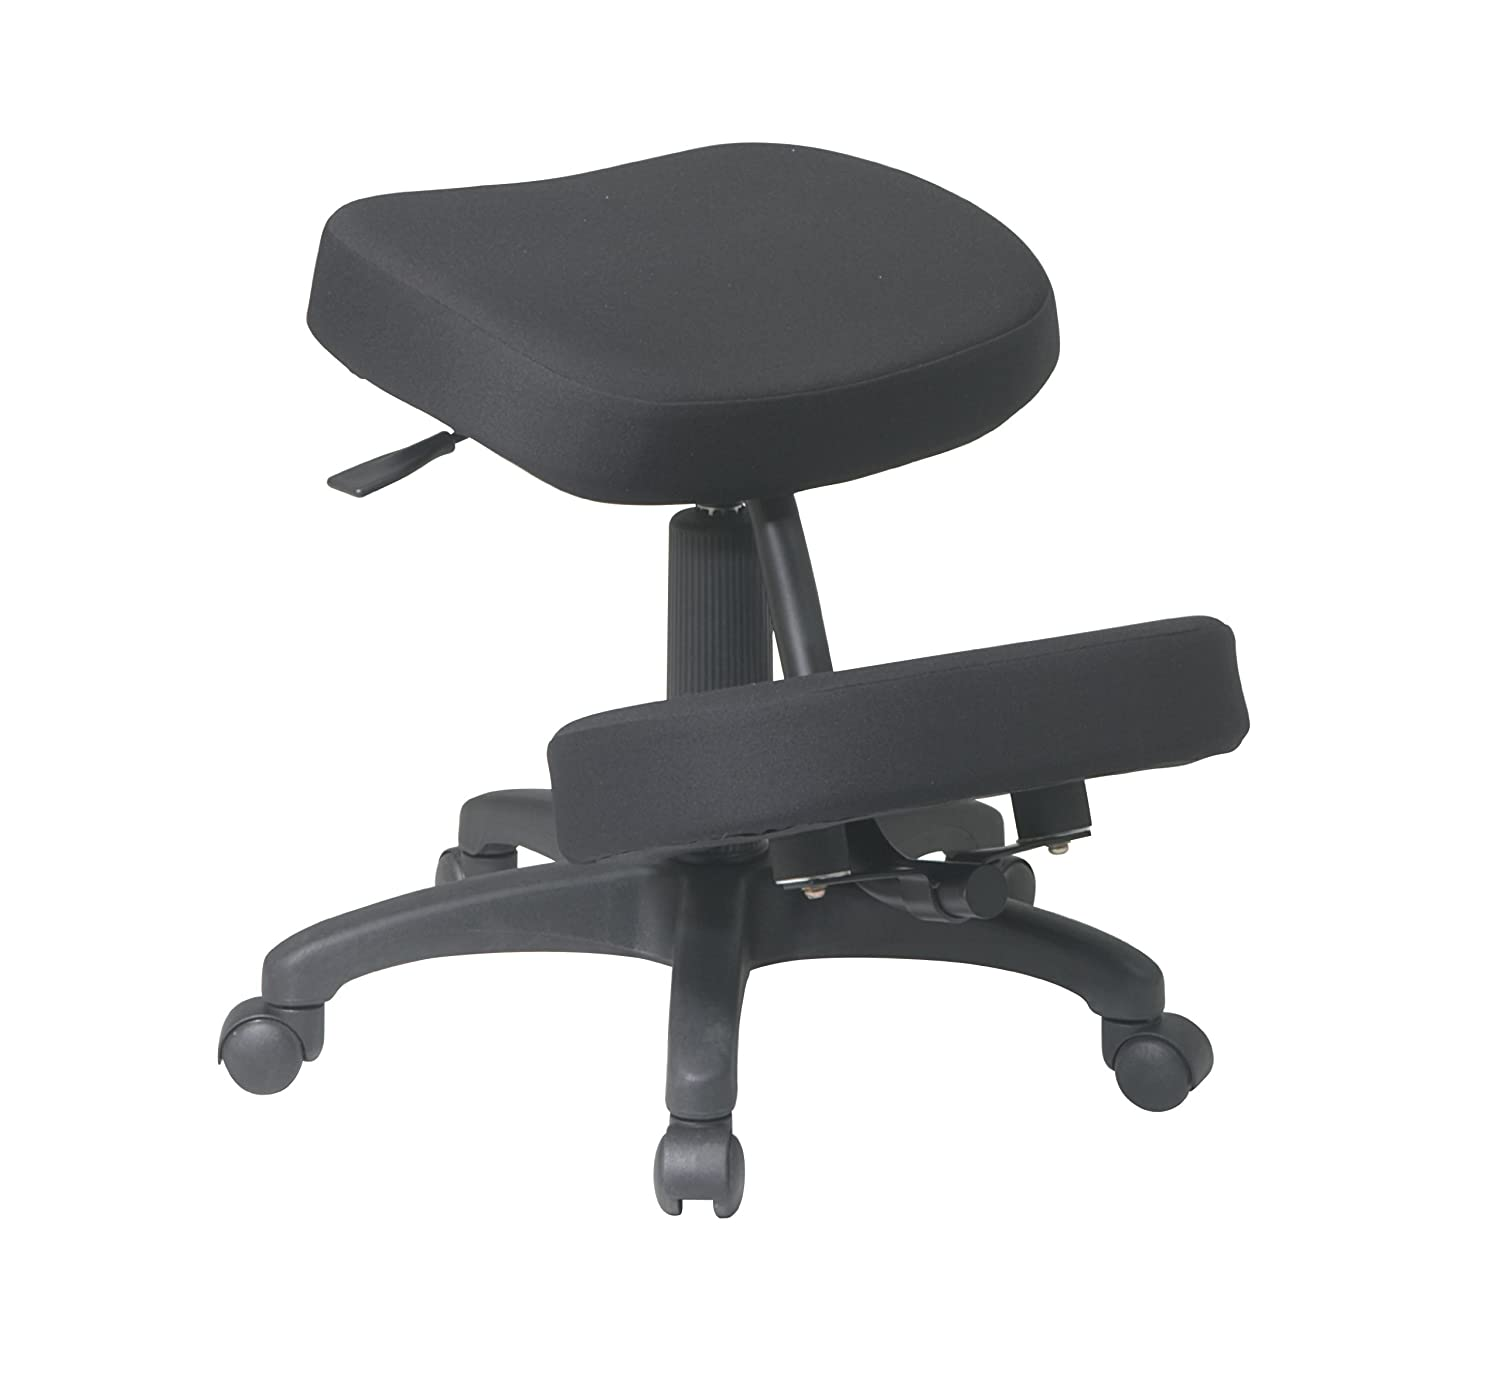 kneeling office chair. Office Star Ergonomically Designed Knee Chair With Casters, Memory Foam And 5 Base, Black: Amazon.ca: Home \u0026 Kitchen Kneeling I